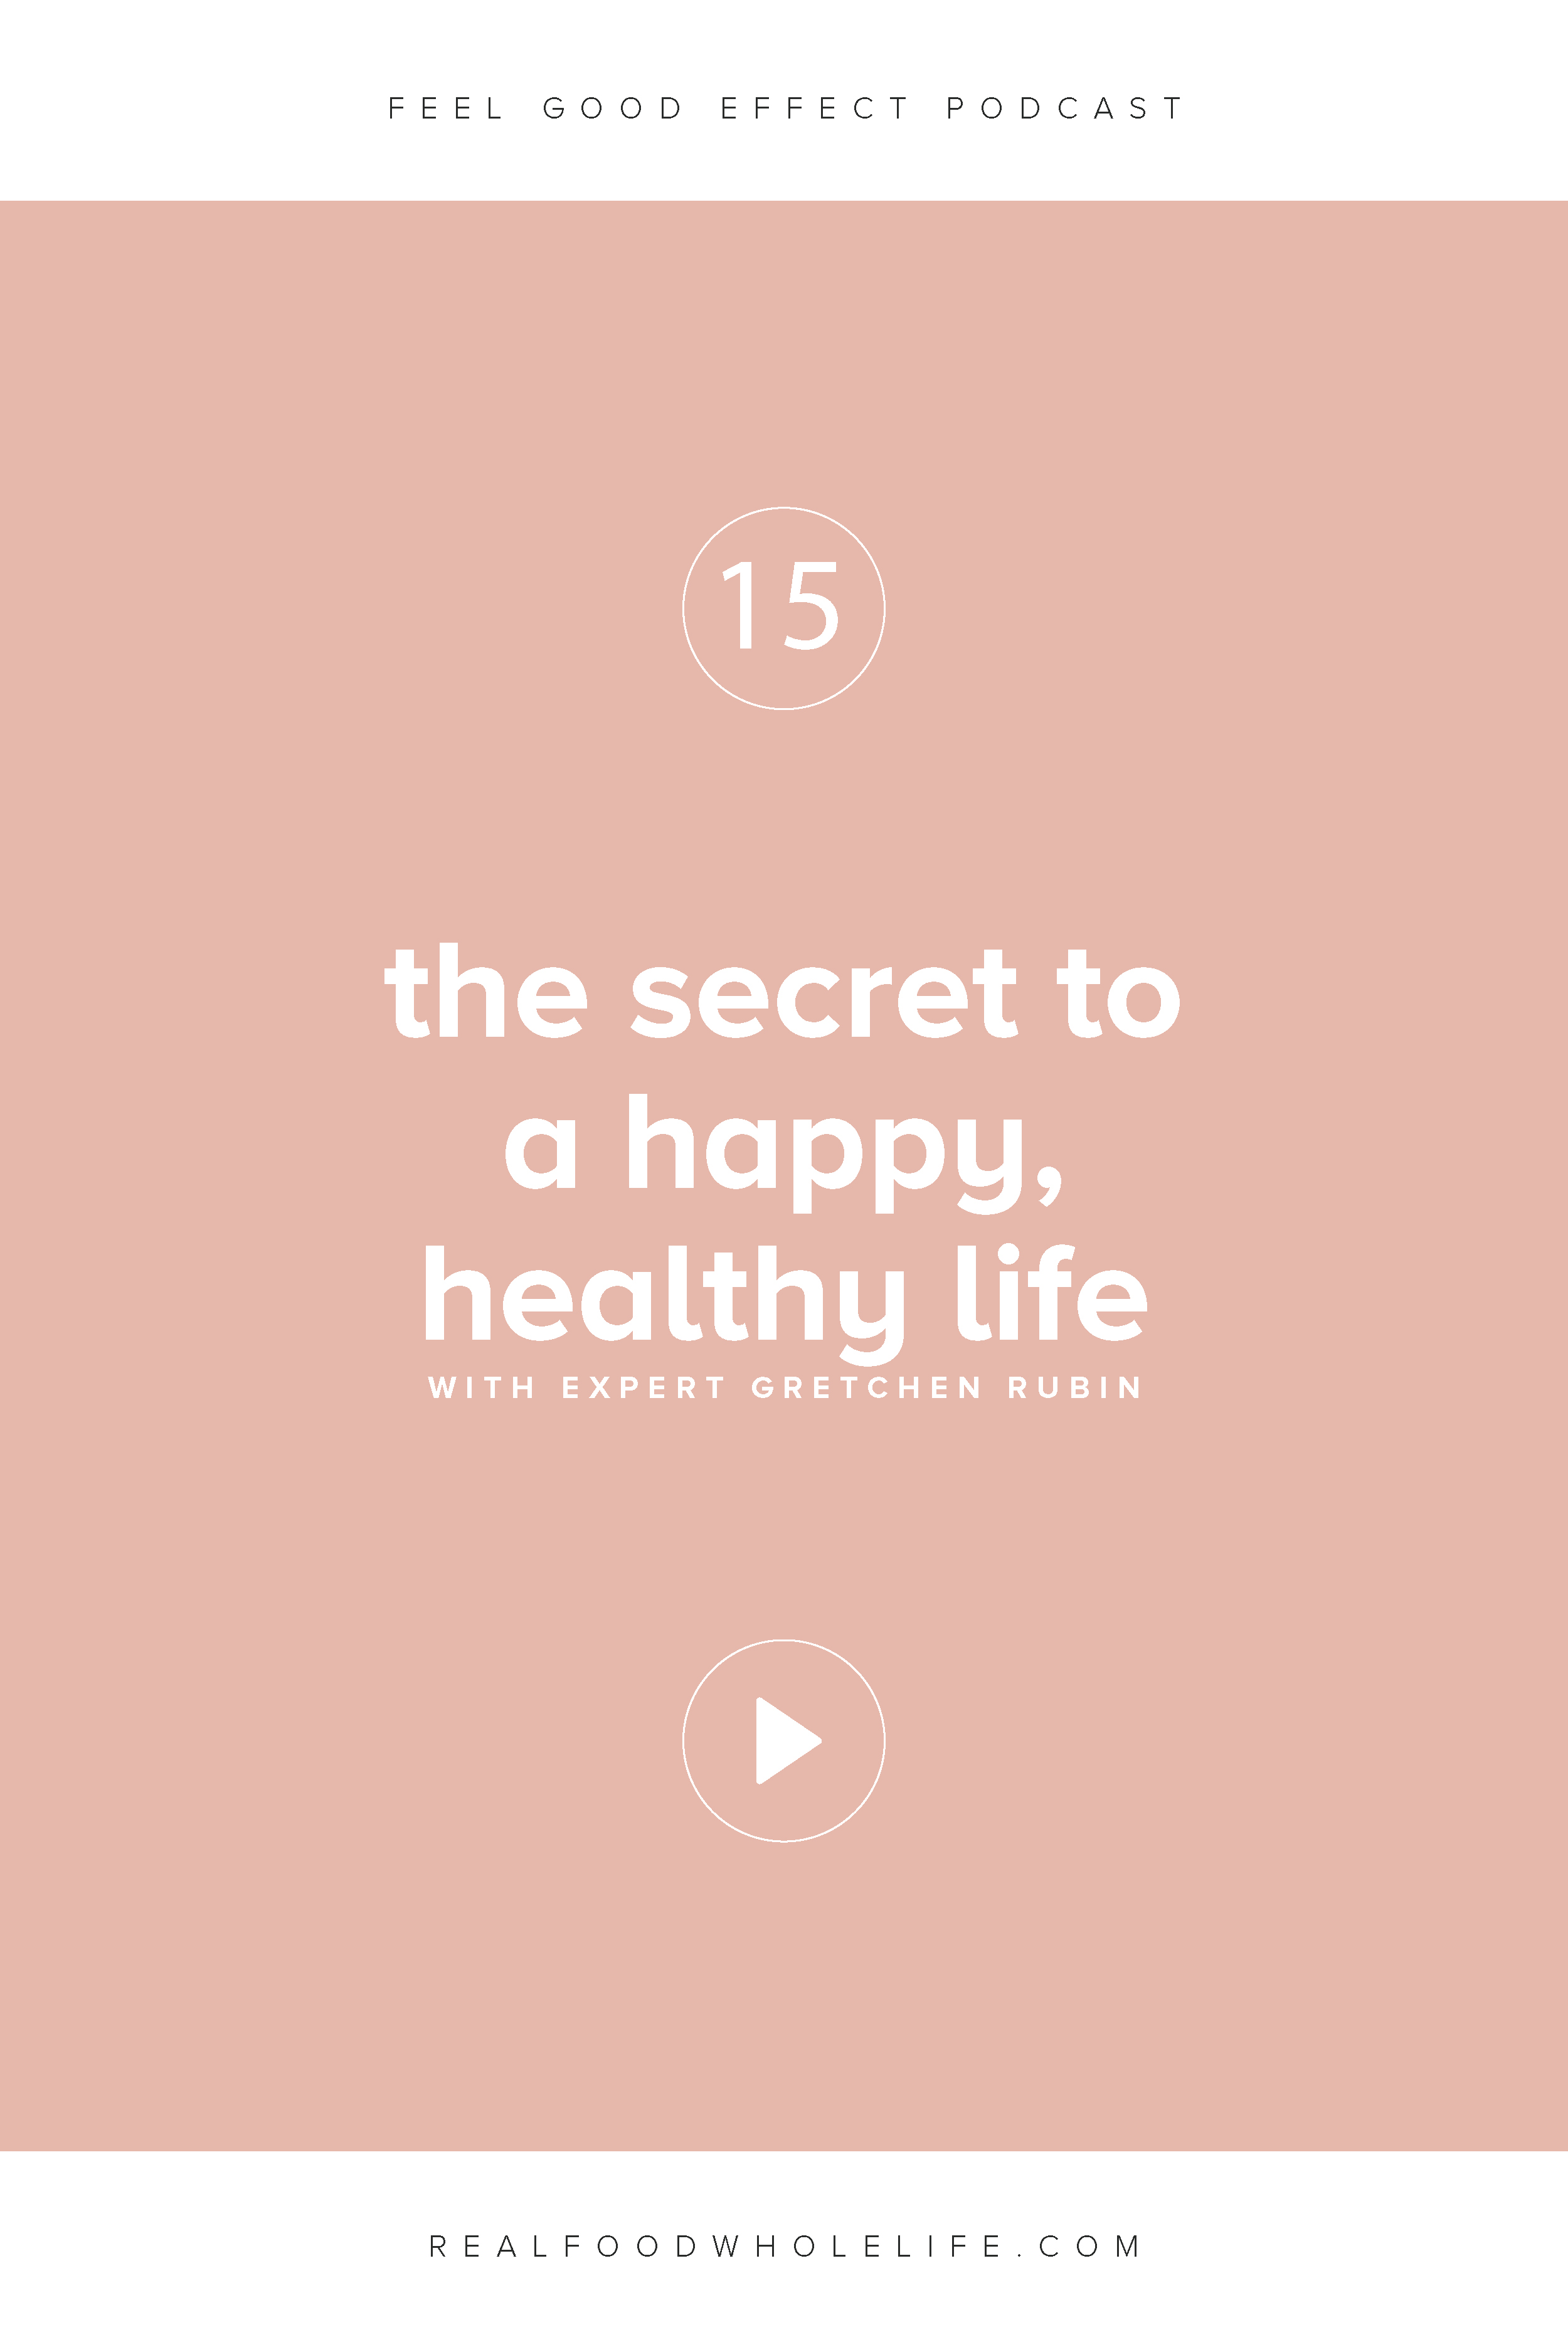 The Secret to a Happy, Healthy Life, with Gretchen Rubin